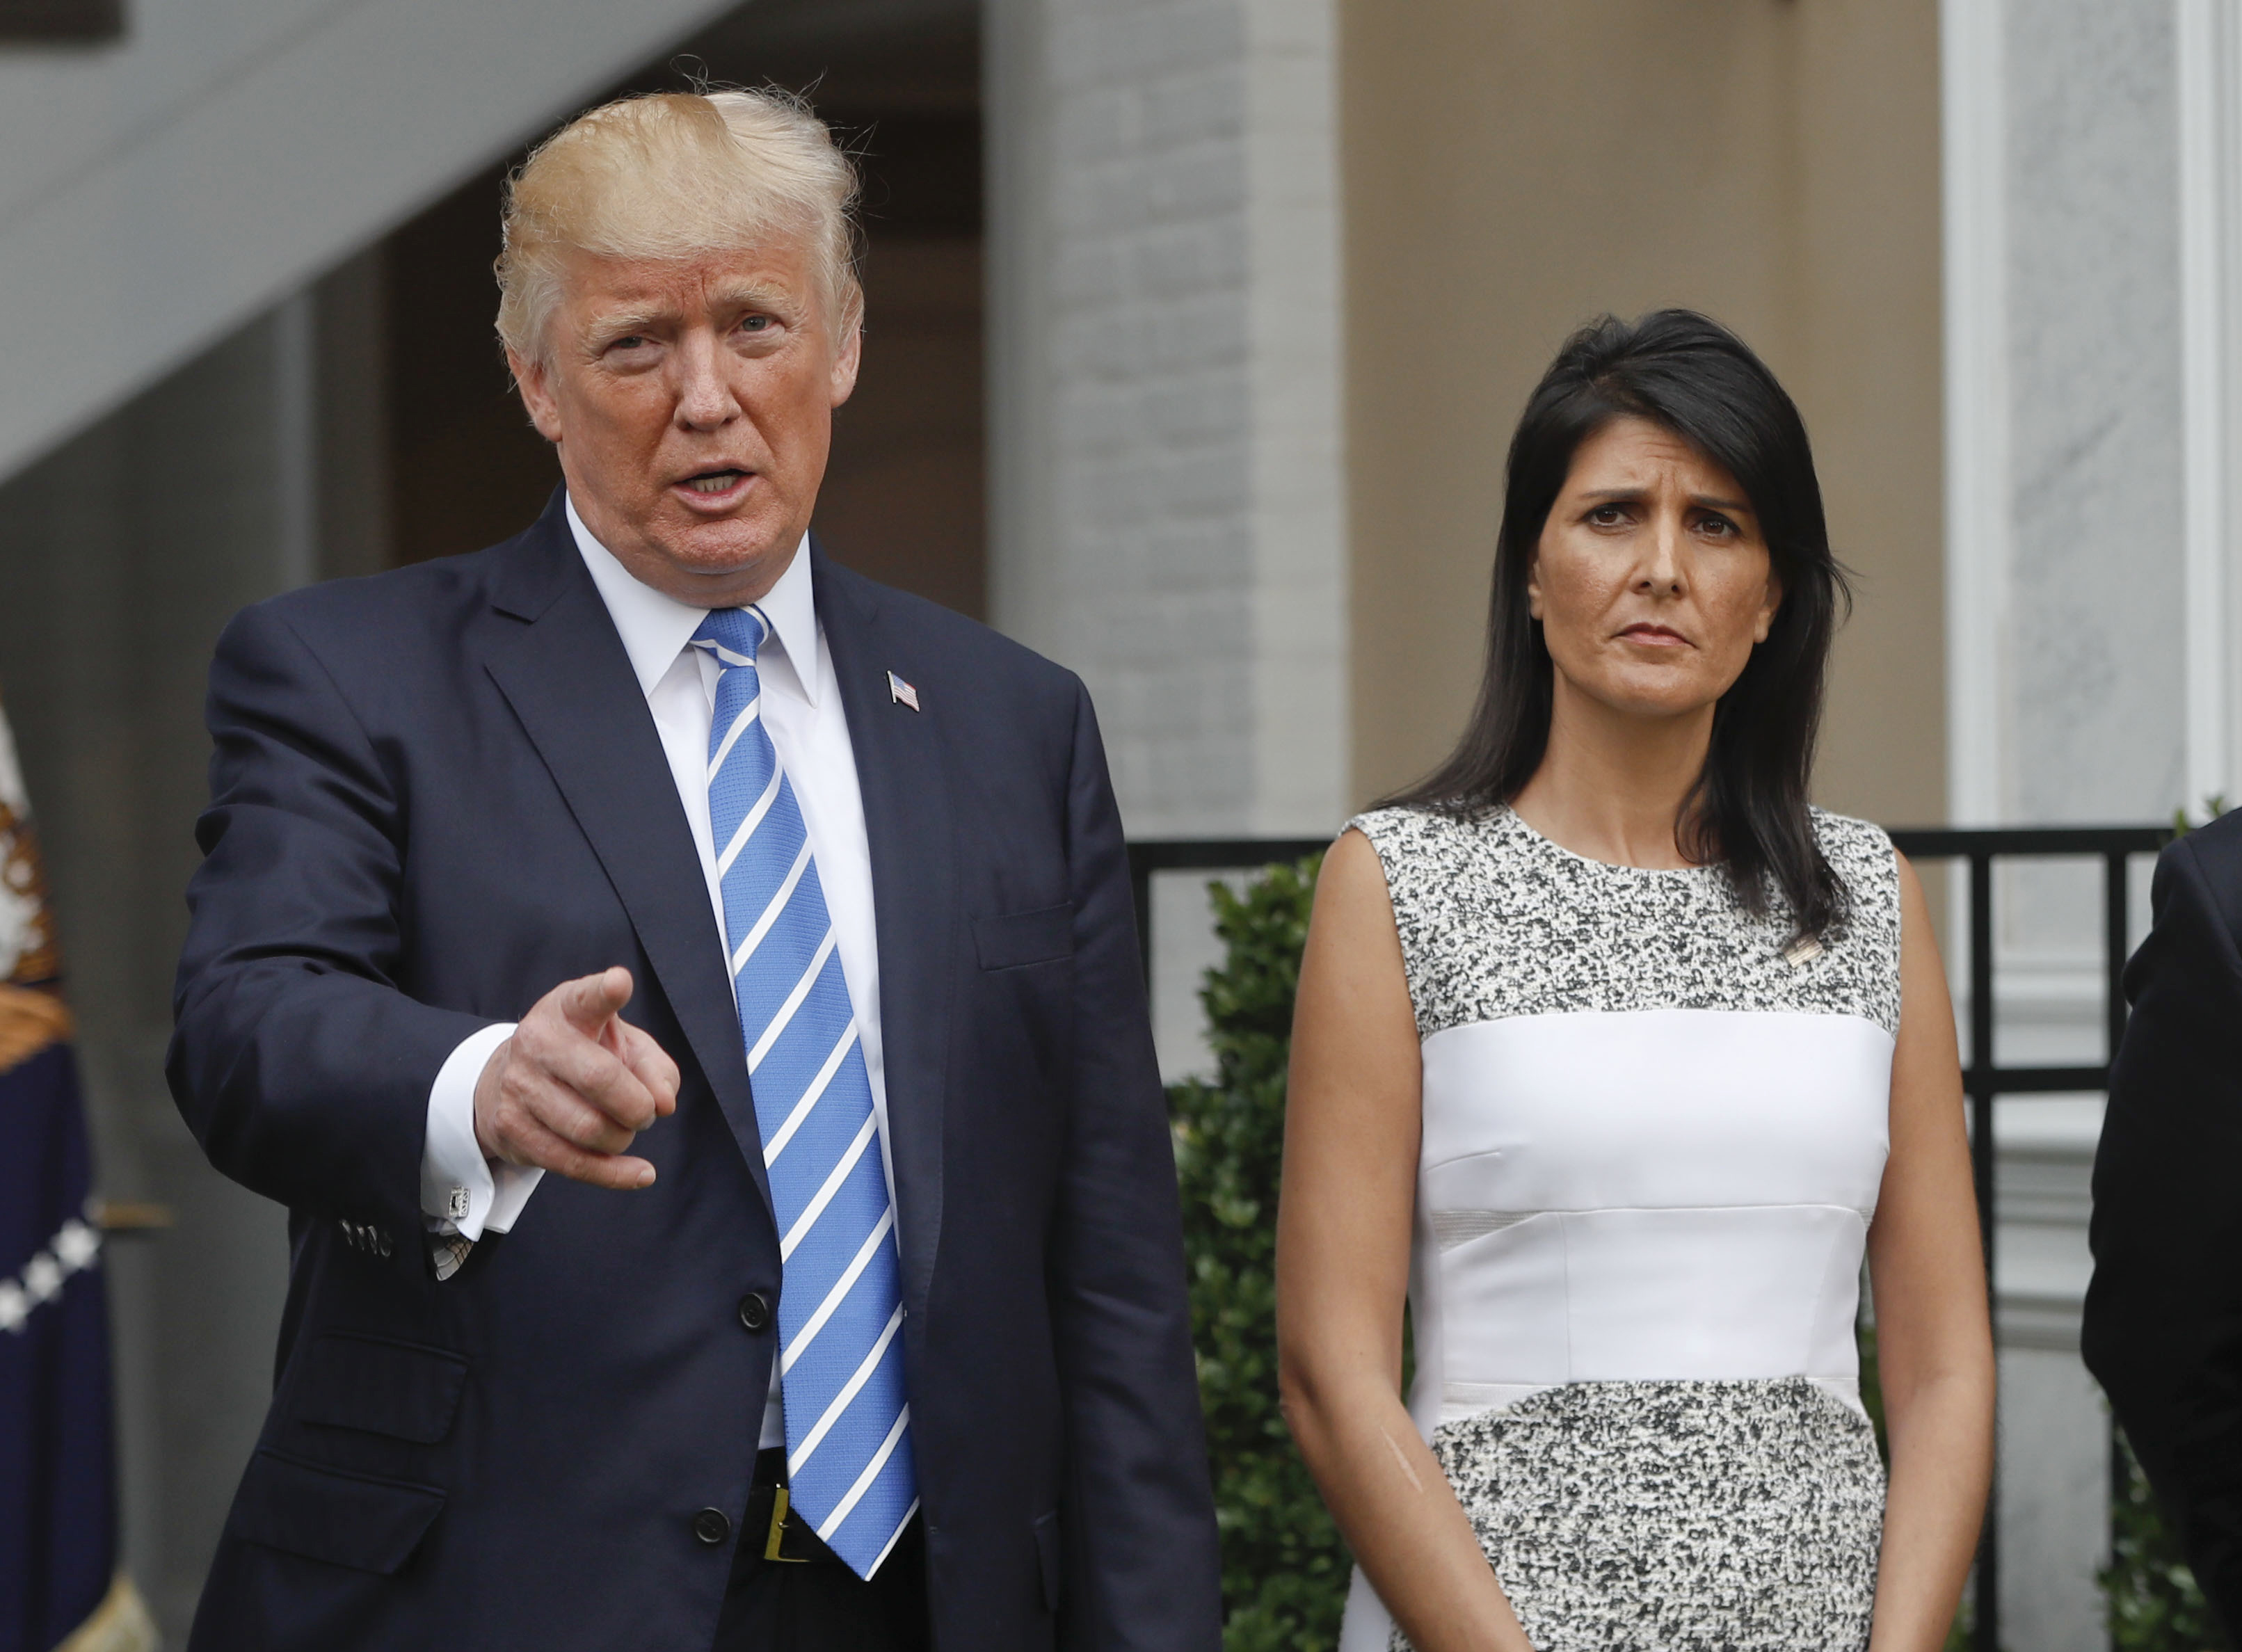 Nikki Haley: I had a 'personal conversation' with Trump about Charlottesville